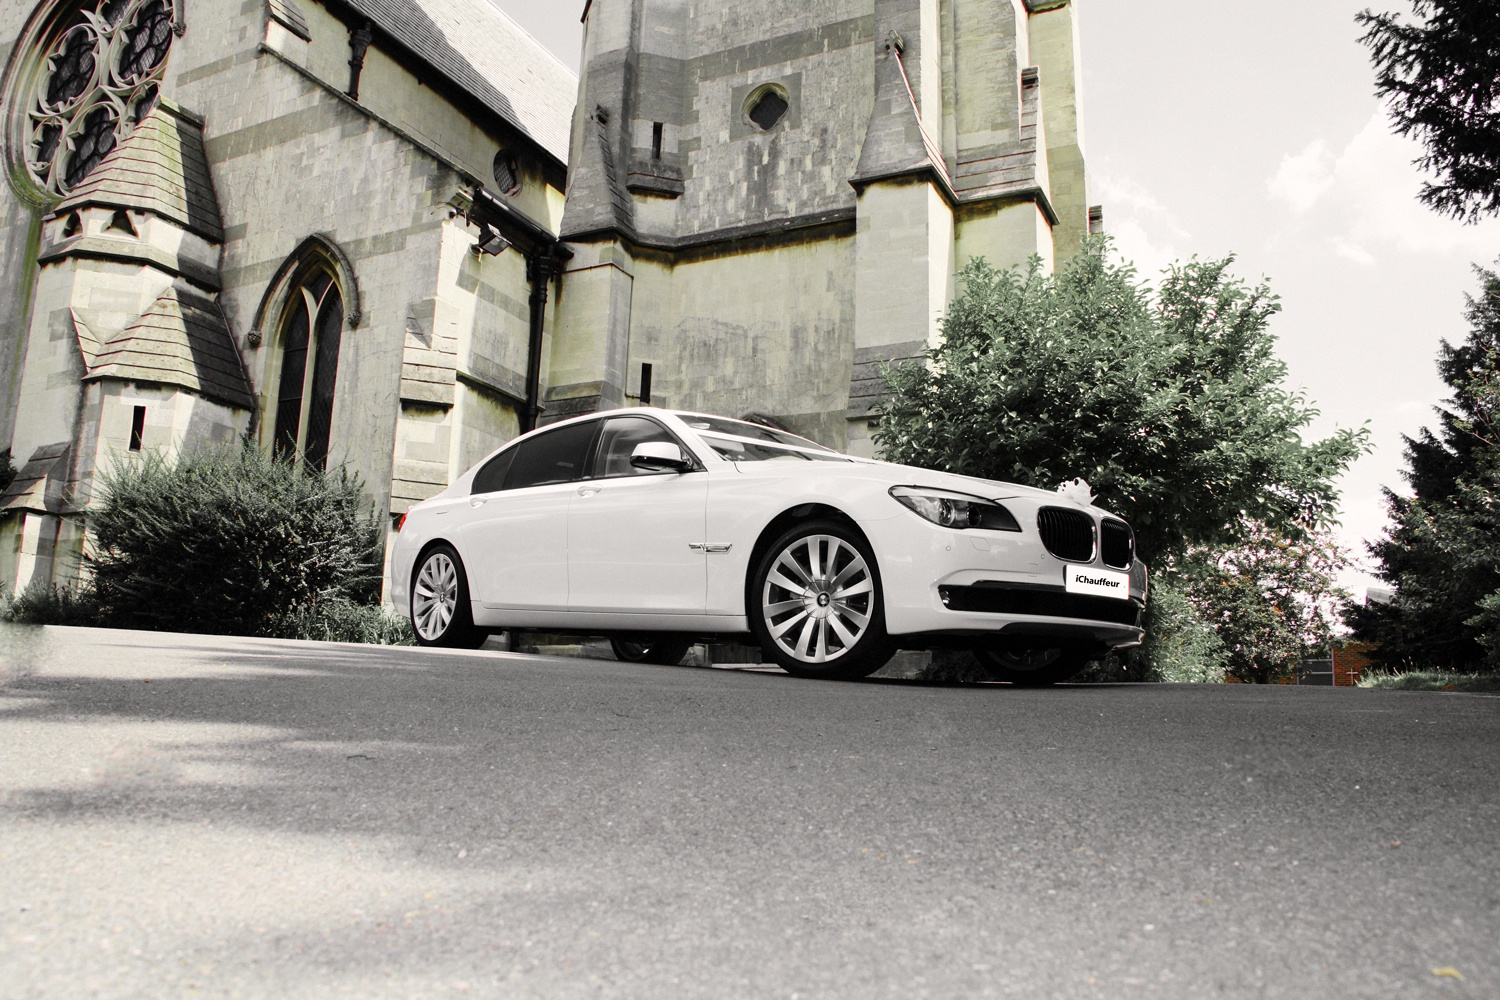 2010 BMW 7 Series in White | Flickr - Photo Sharing!